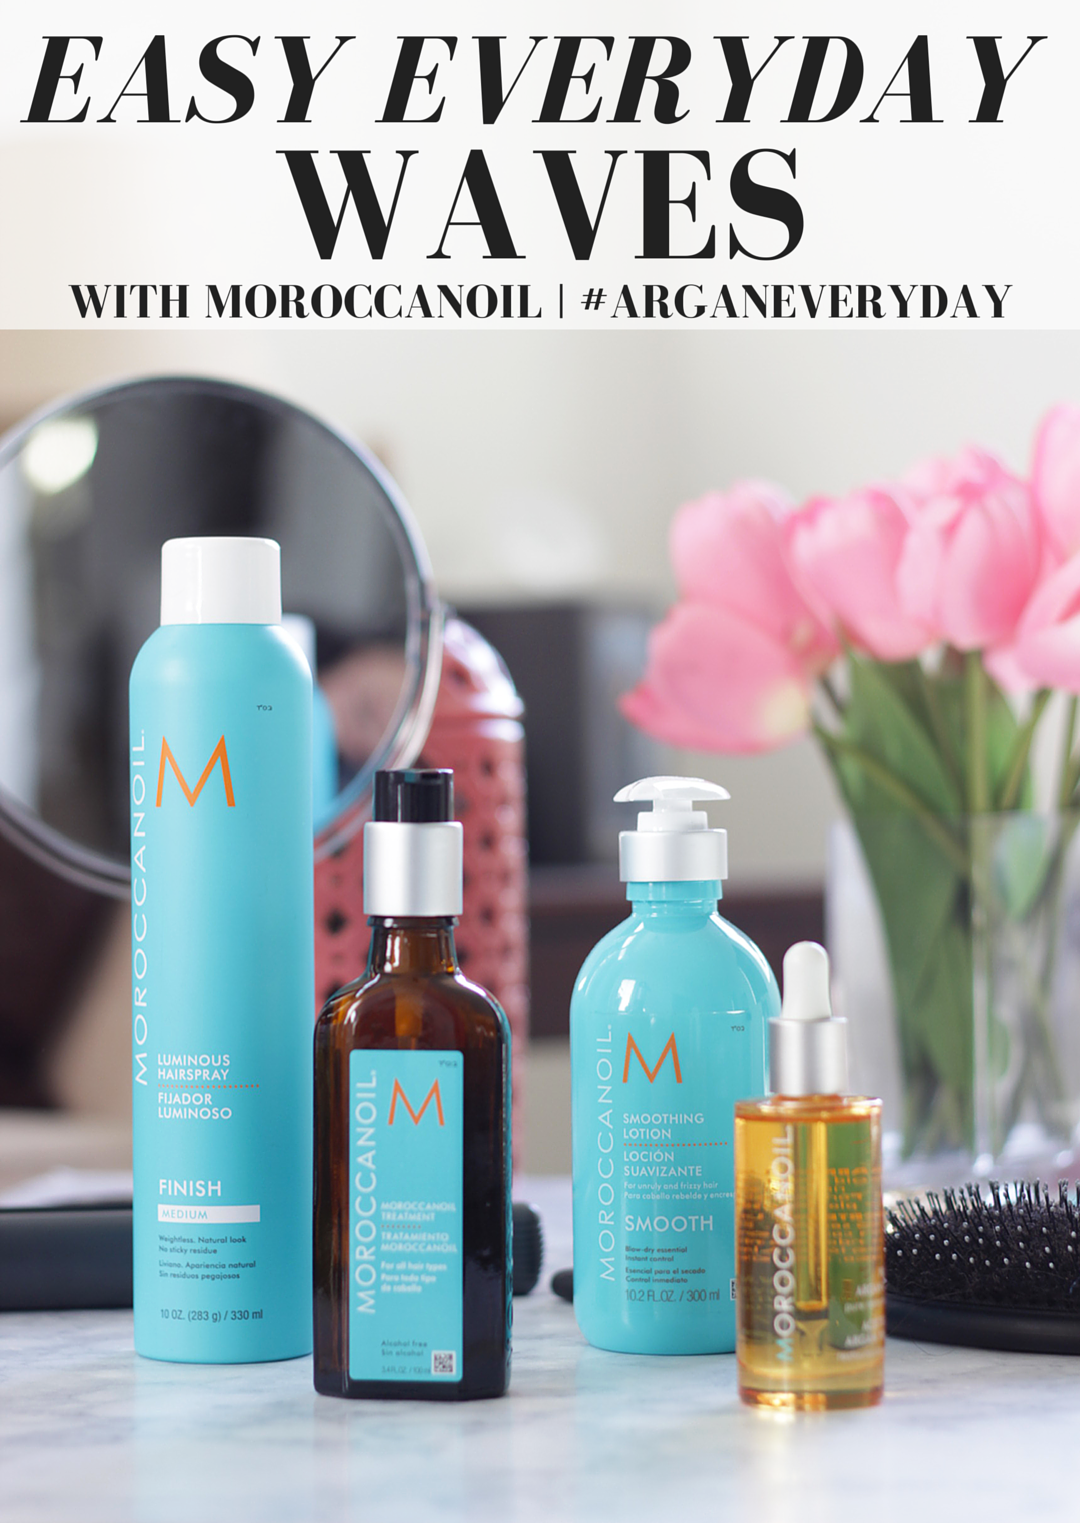 #ad New Year, New Haircare, right? Time to say hello to soft, nourished hair thanks to help from @Moroccanoil and #ArganEveryday. Keep reading and see why Jamie is obsessed with this Argan infused line- #ArganEveryday #ad